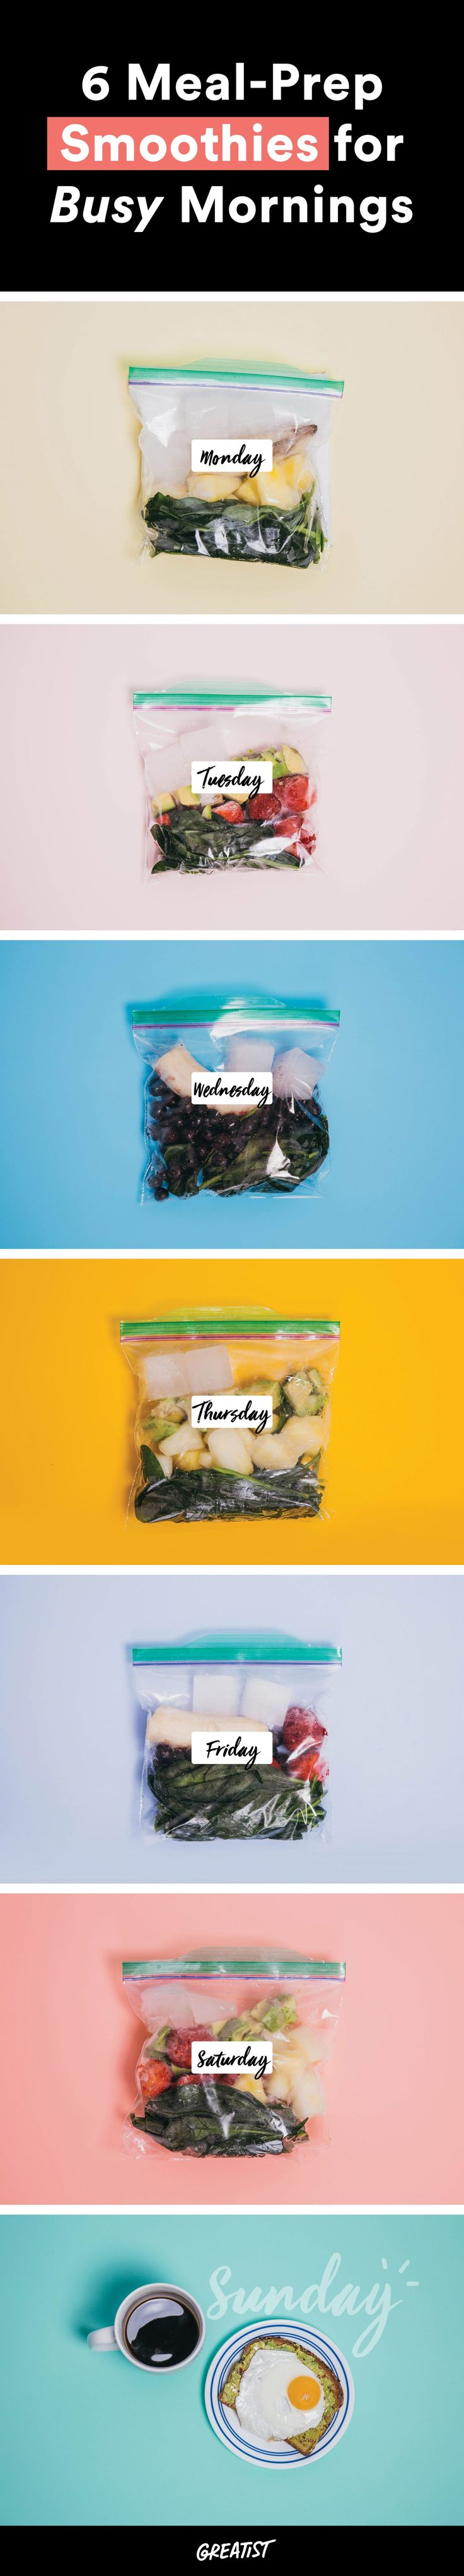 Go ahead, give 'em a whirl. #greatist https://greatist.com/eat/meal-prep-smoothie-recipes